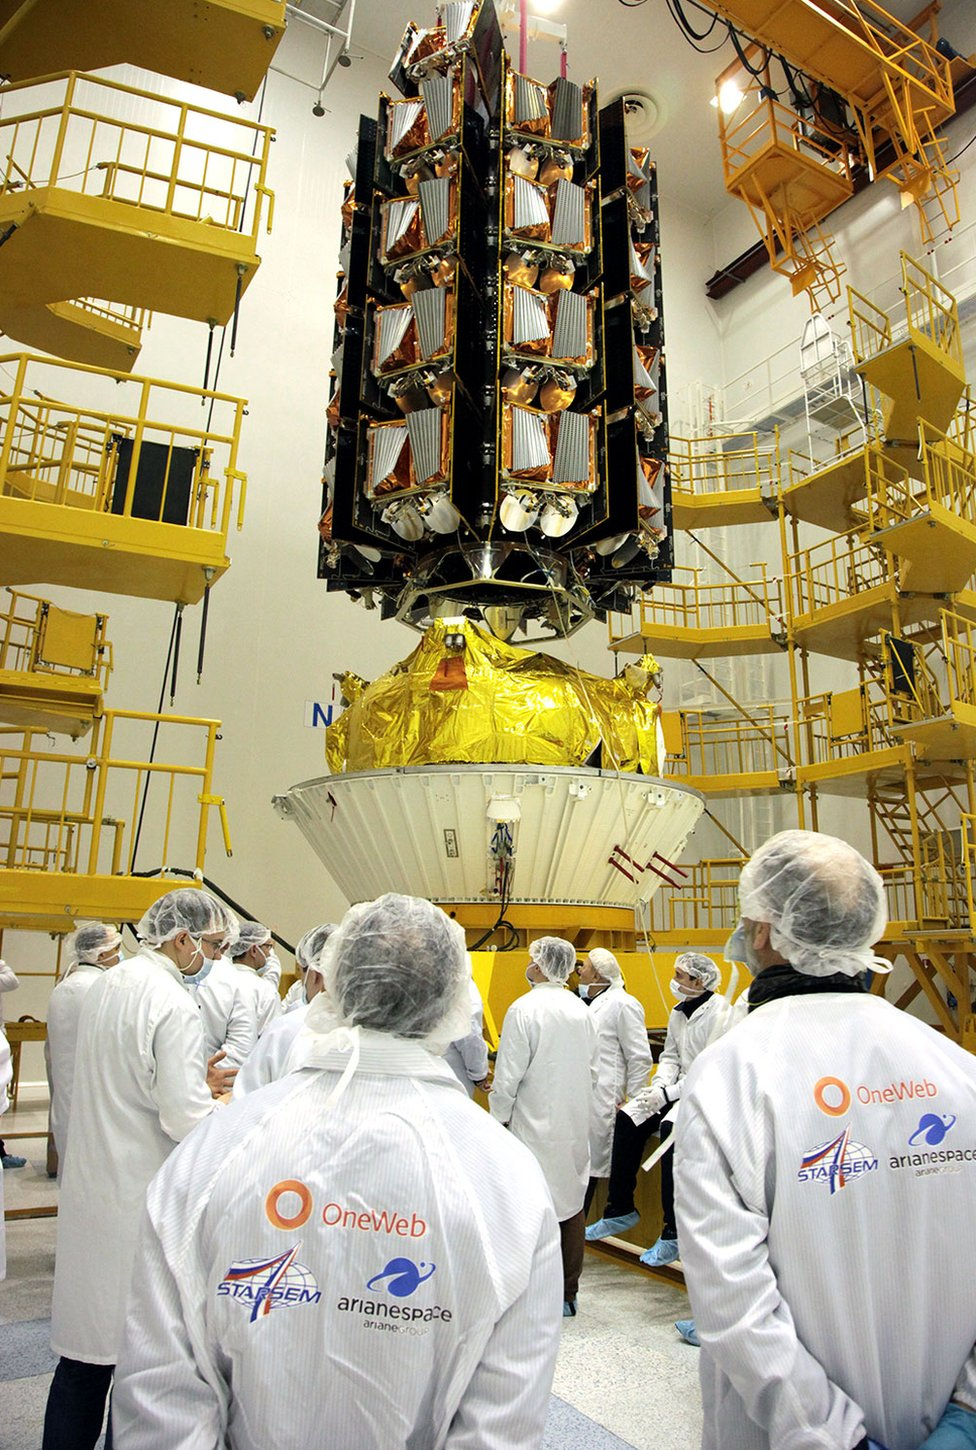 OneWeb satellites ready for launch